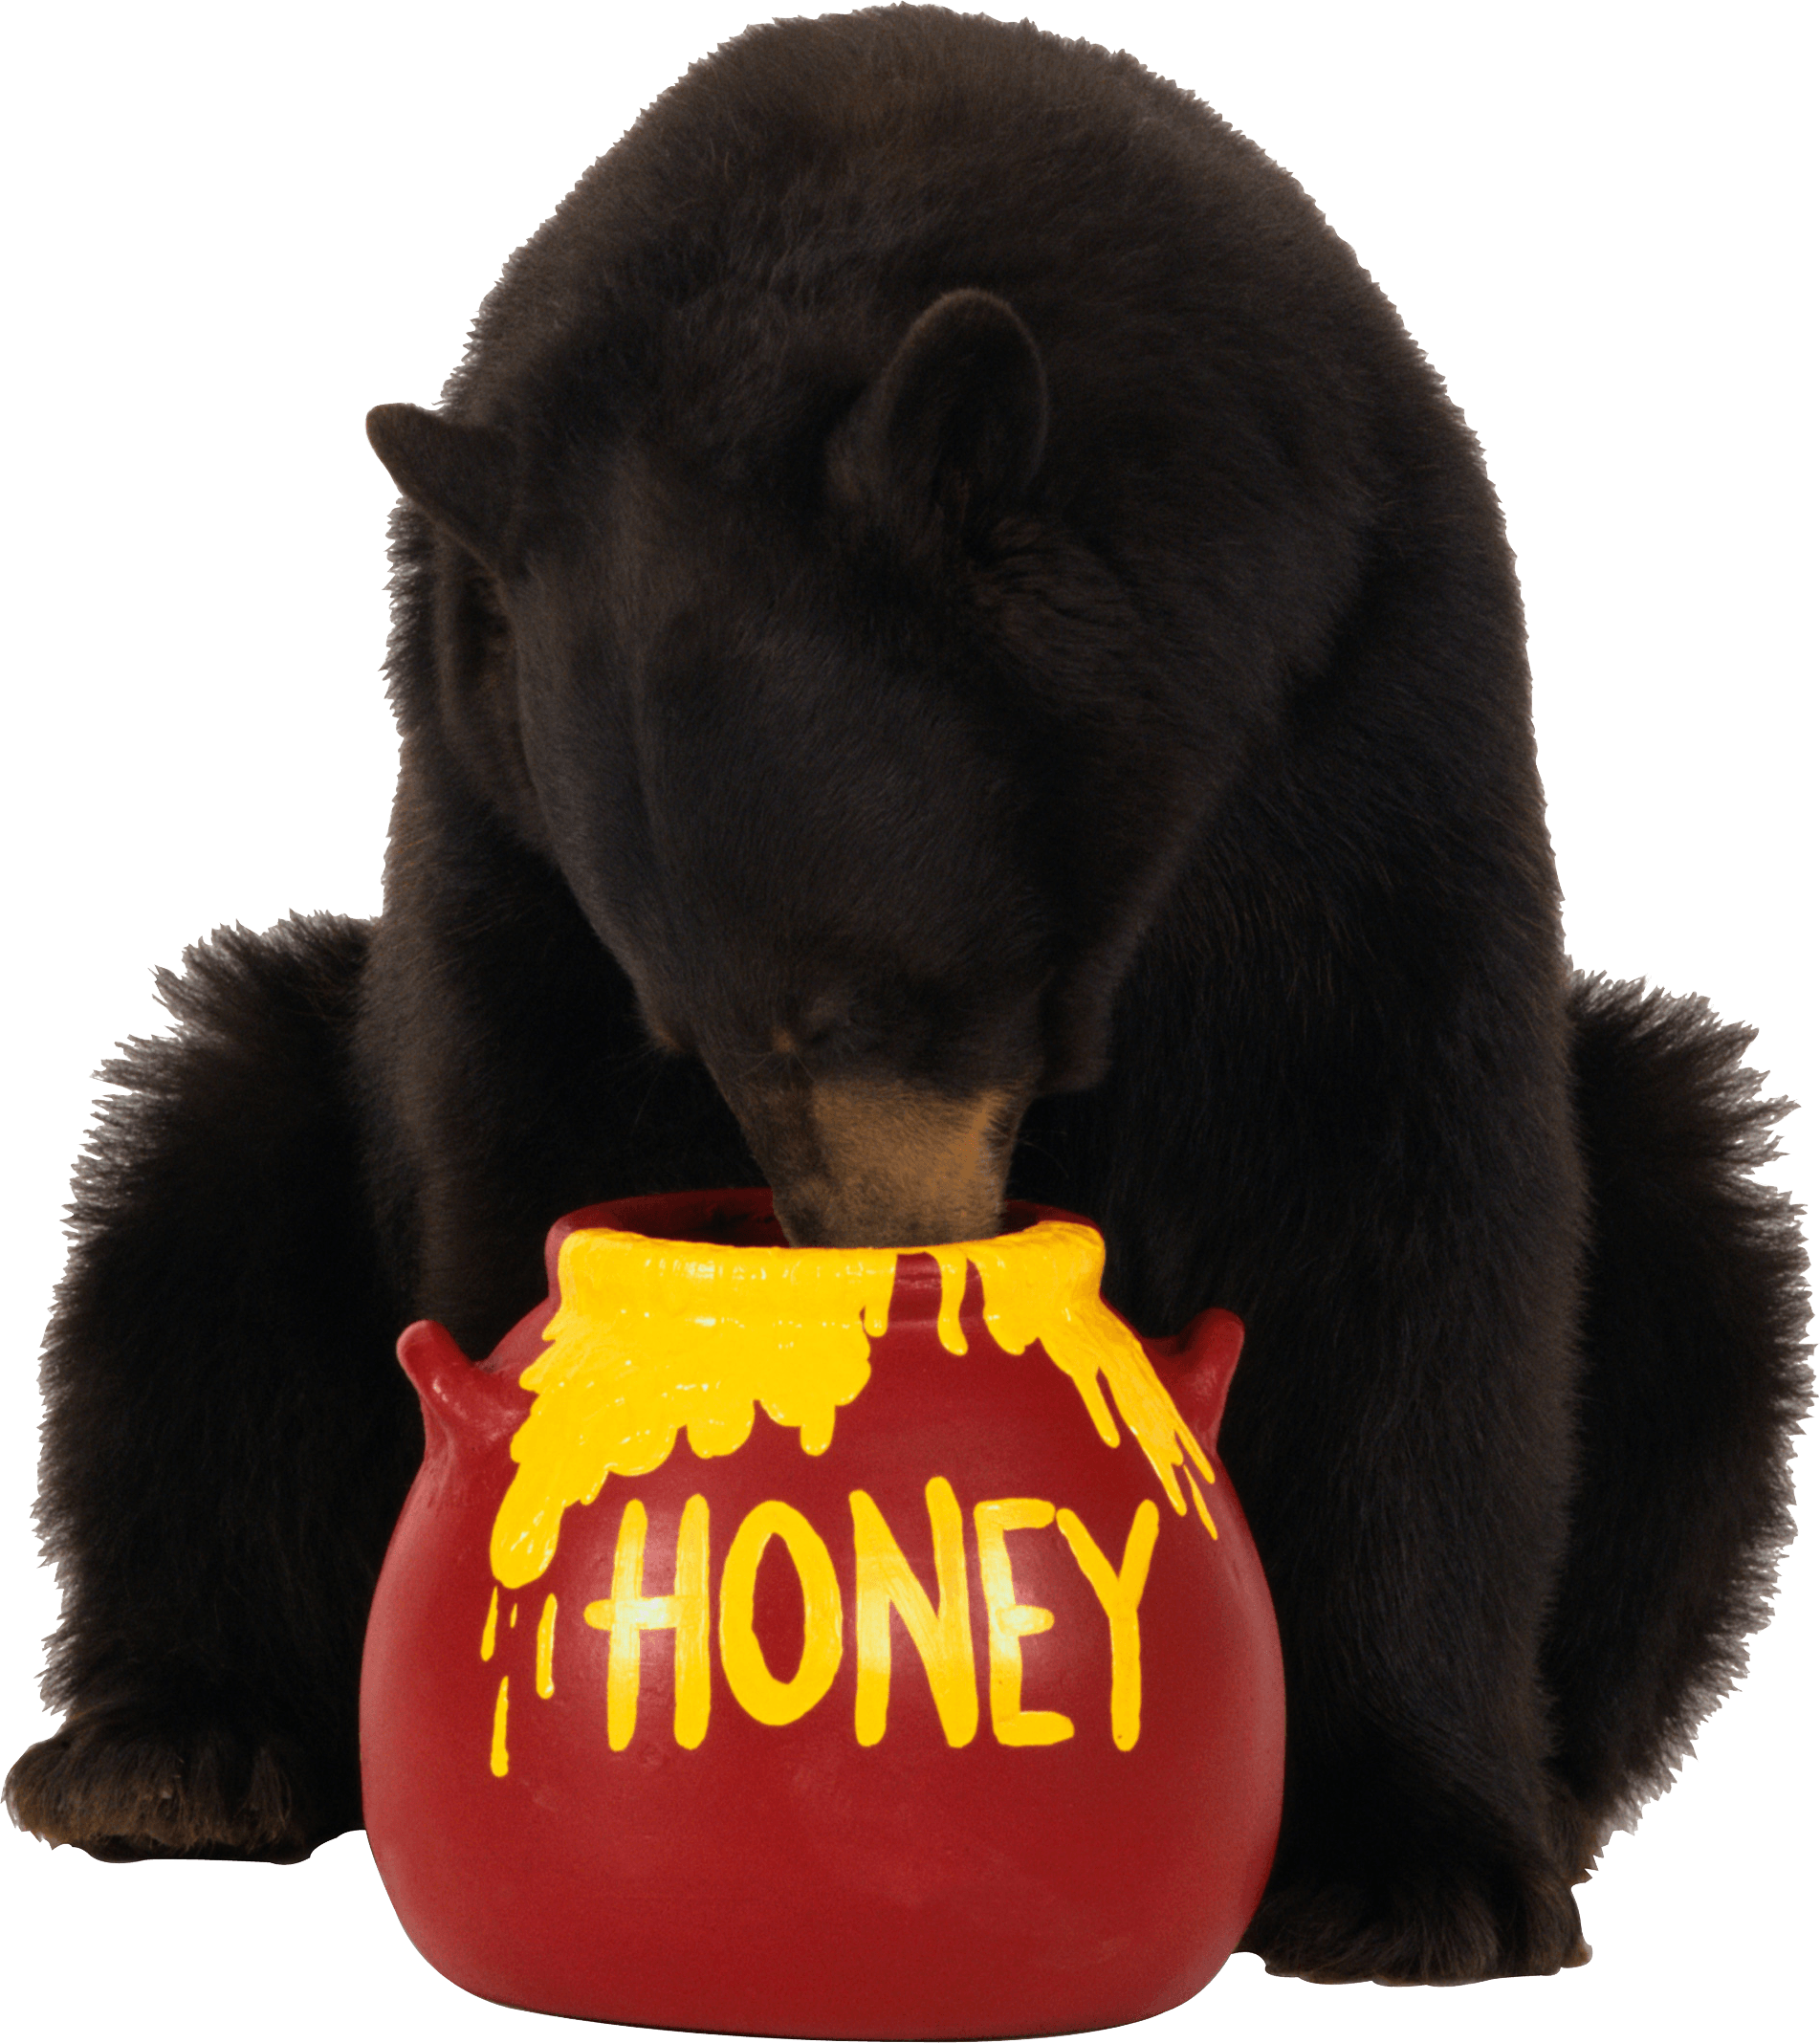 Brown Bear Eats Honey Png Image PNG Image